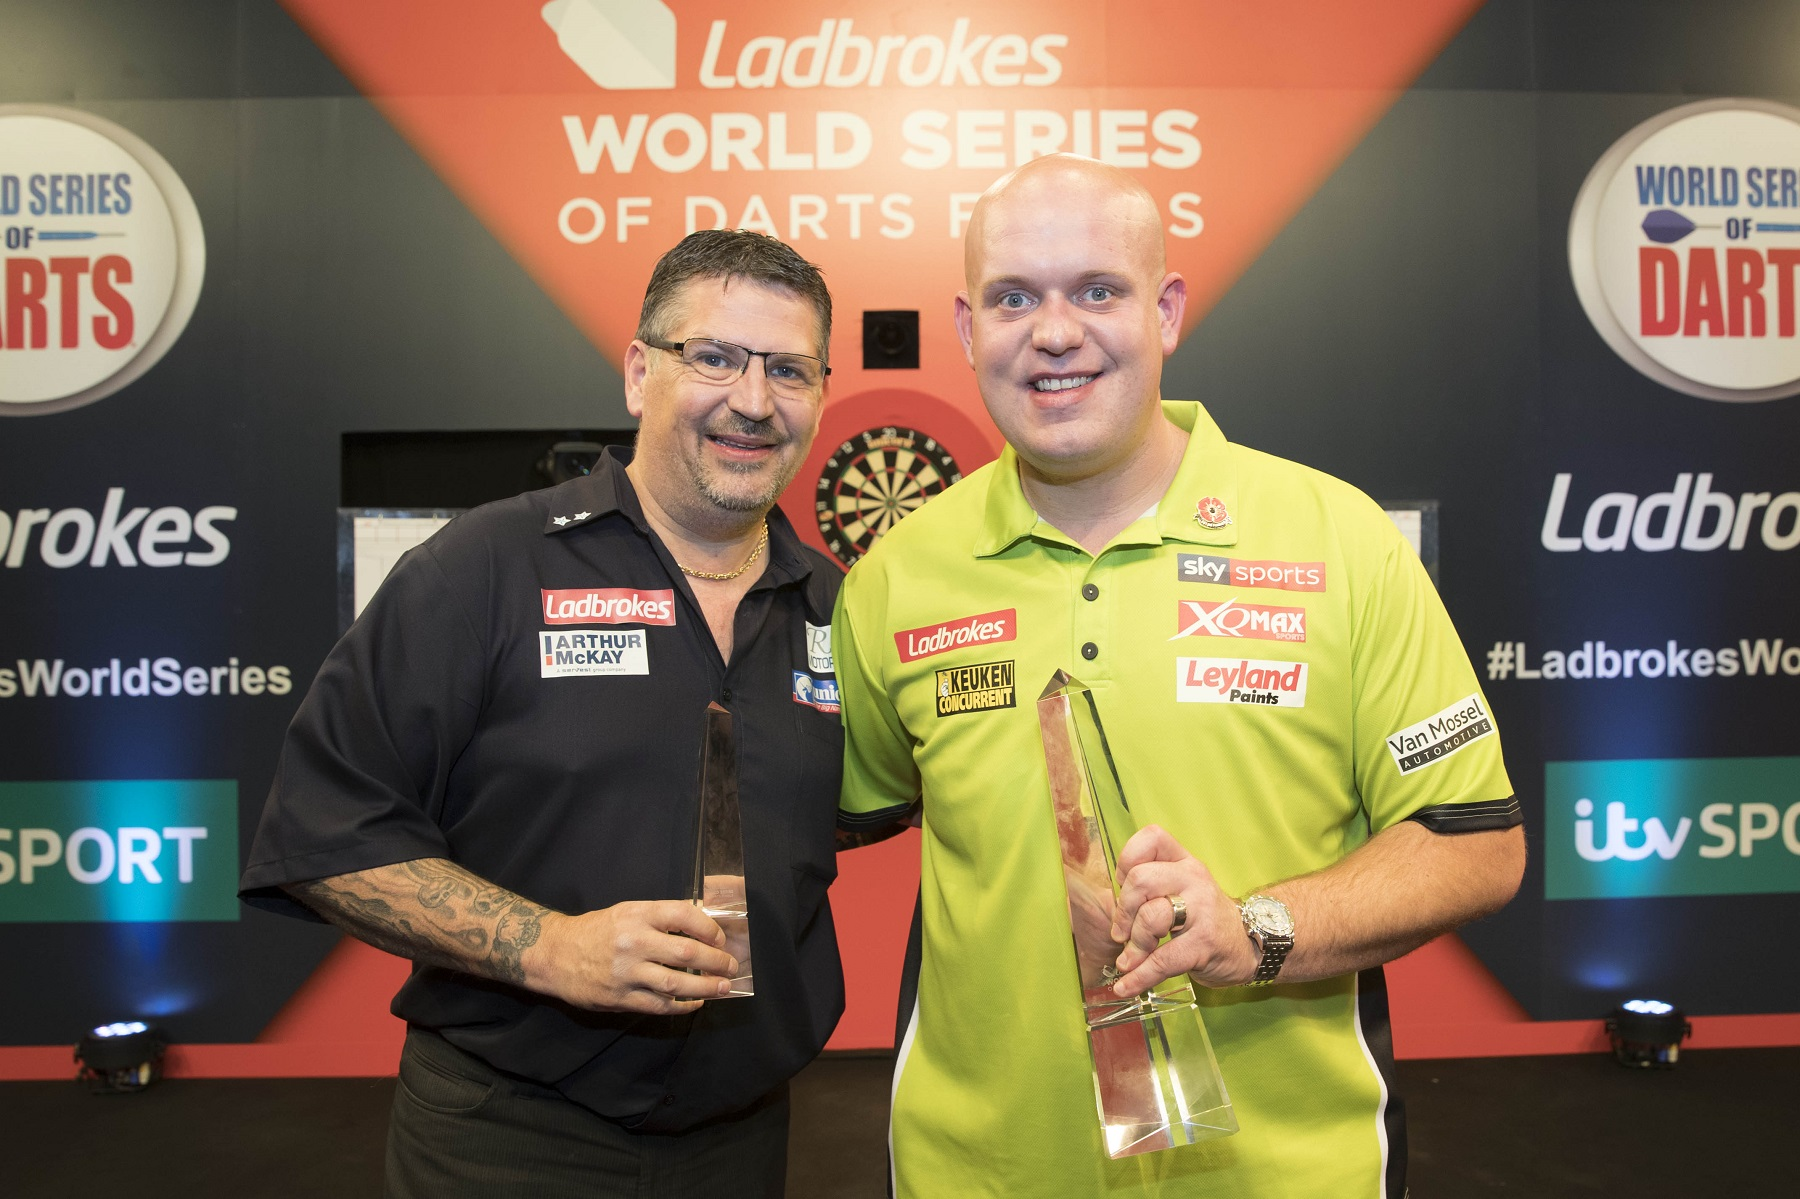 World Series Finals Darts